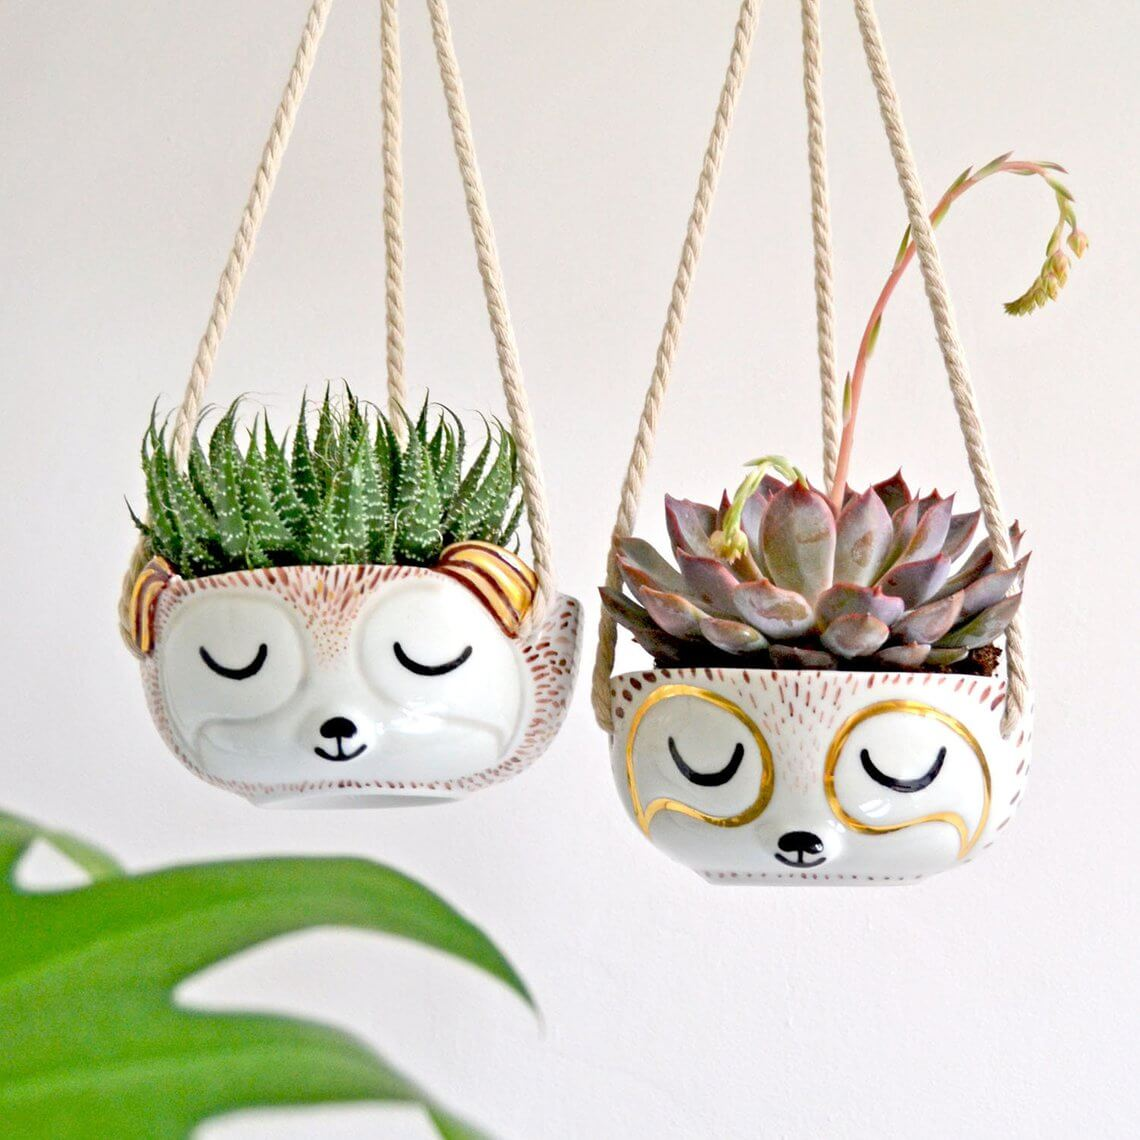 Sleepy Sloth Hanging Planter